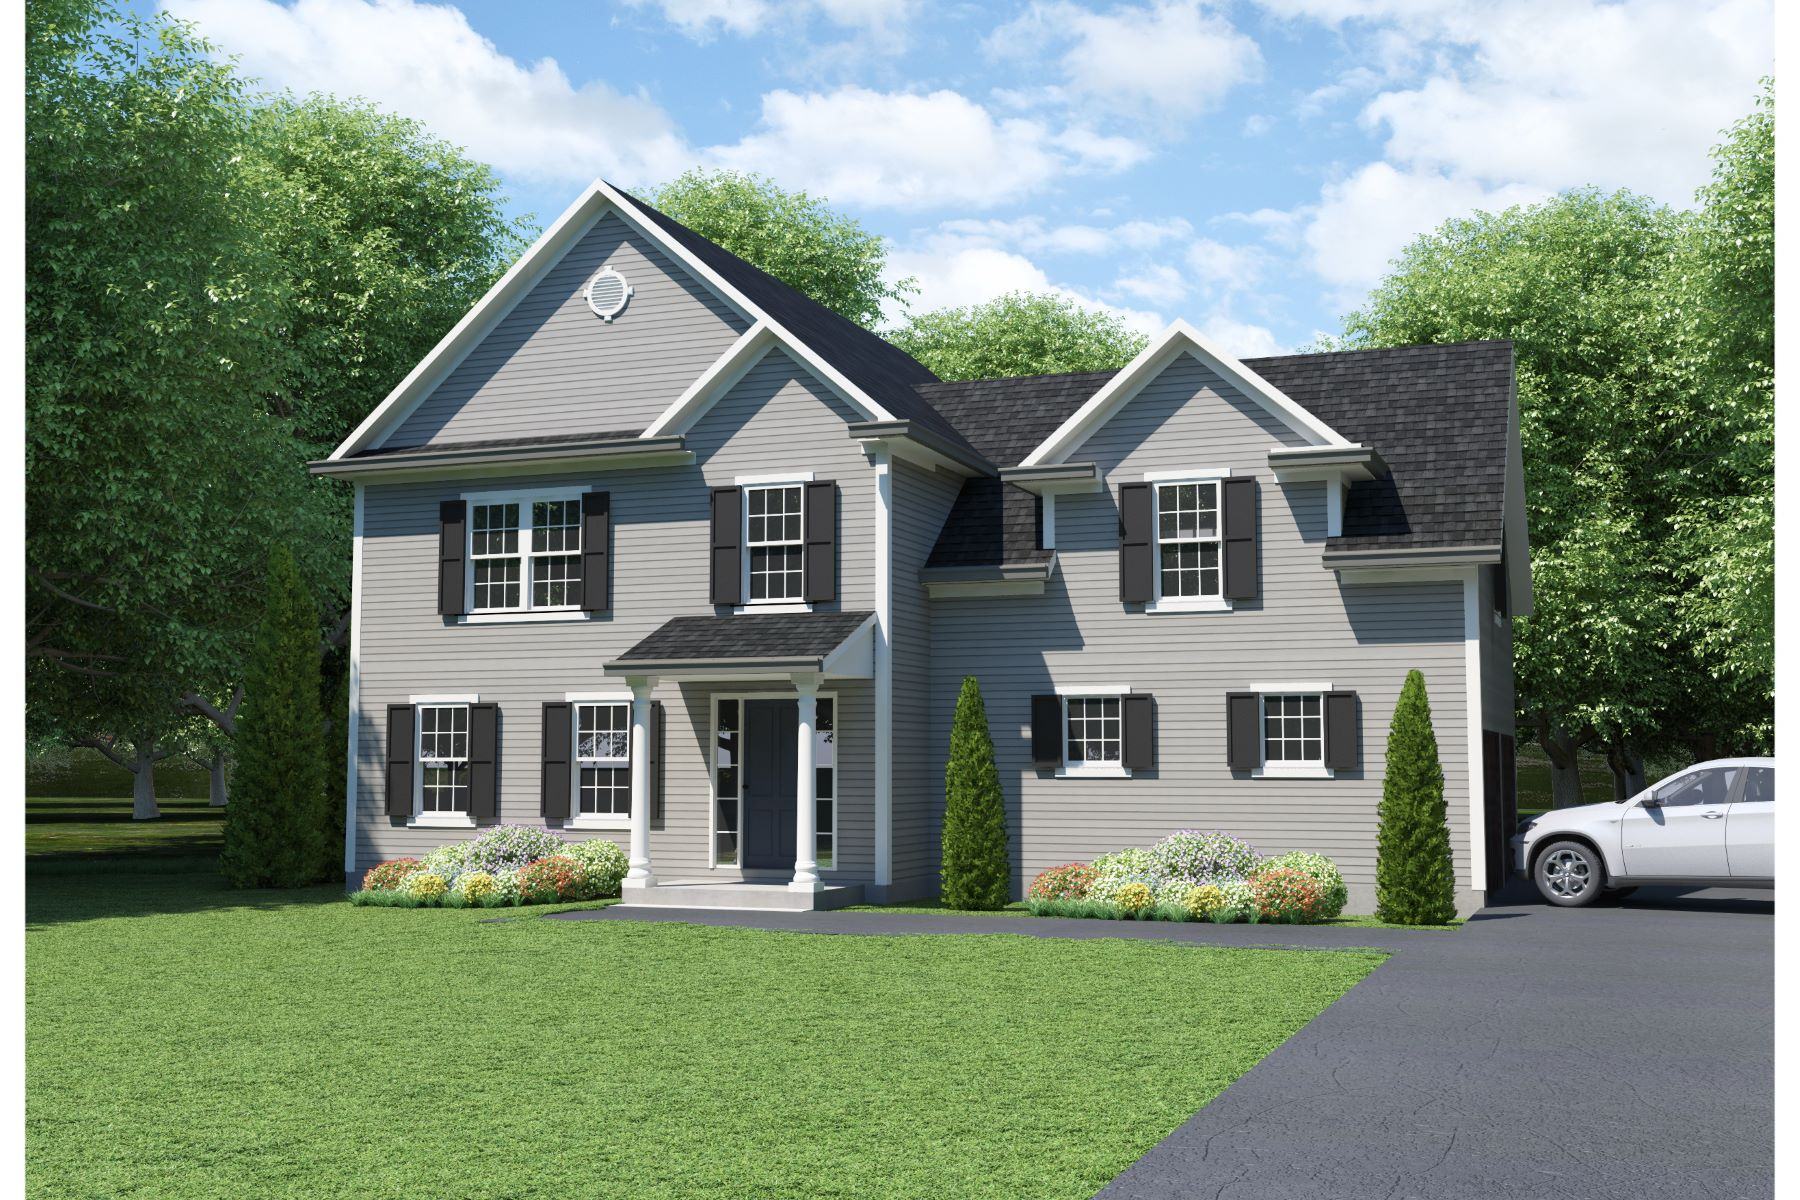 single family homes vì Bán tại To Be Built Classic Customizable Colonial 94 Quail Run Road Lot 24, Woodbury, Connecticut 06798 Hoa Kỳ